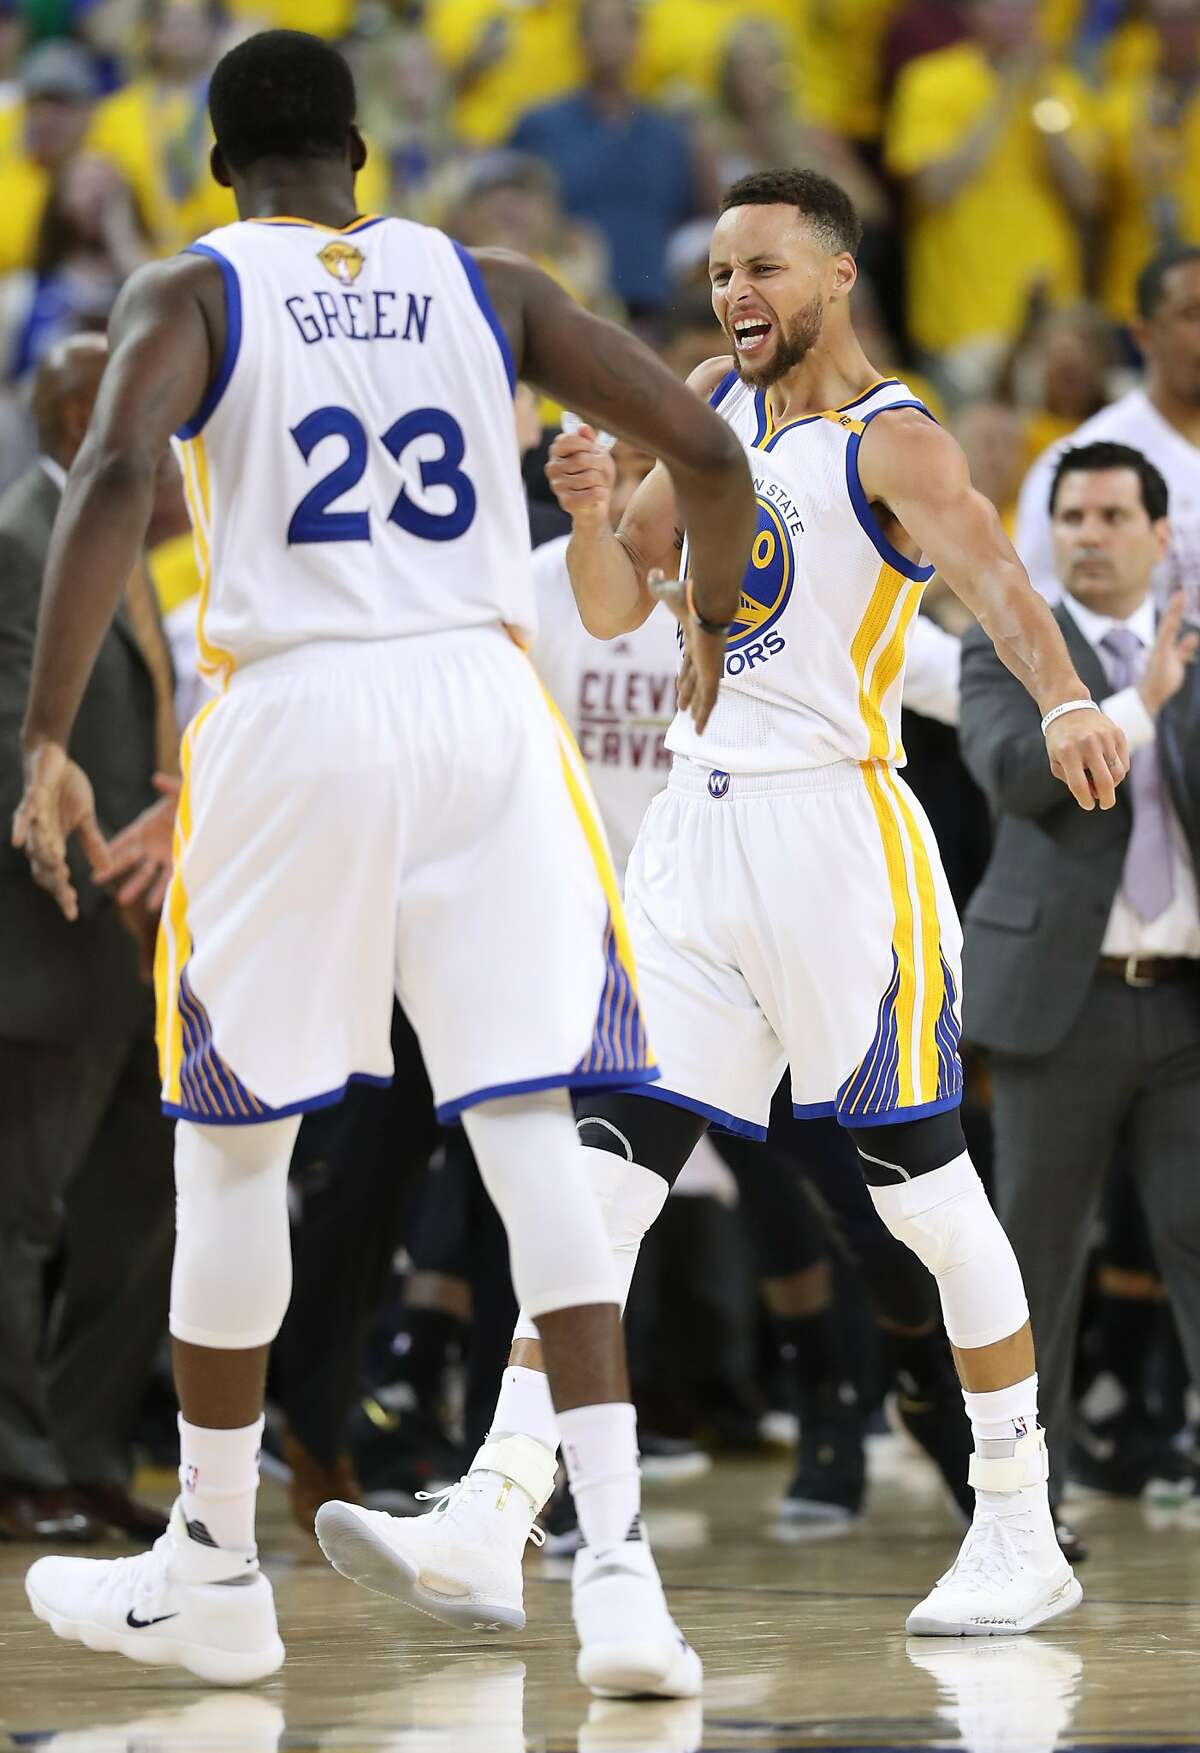 Golden State Warriors' Stephen Curry reacts to his drive and lay up against Cleveland Cavaliers' LeBron James in 3rd quarter of Warriors' 132-113 win in Game 2 of NBA Finals at Oracle Arena in Oakland, Calif., on Sunday, June 4, 2017.